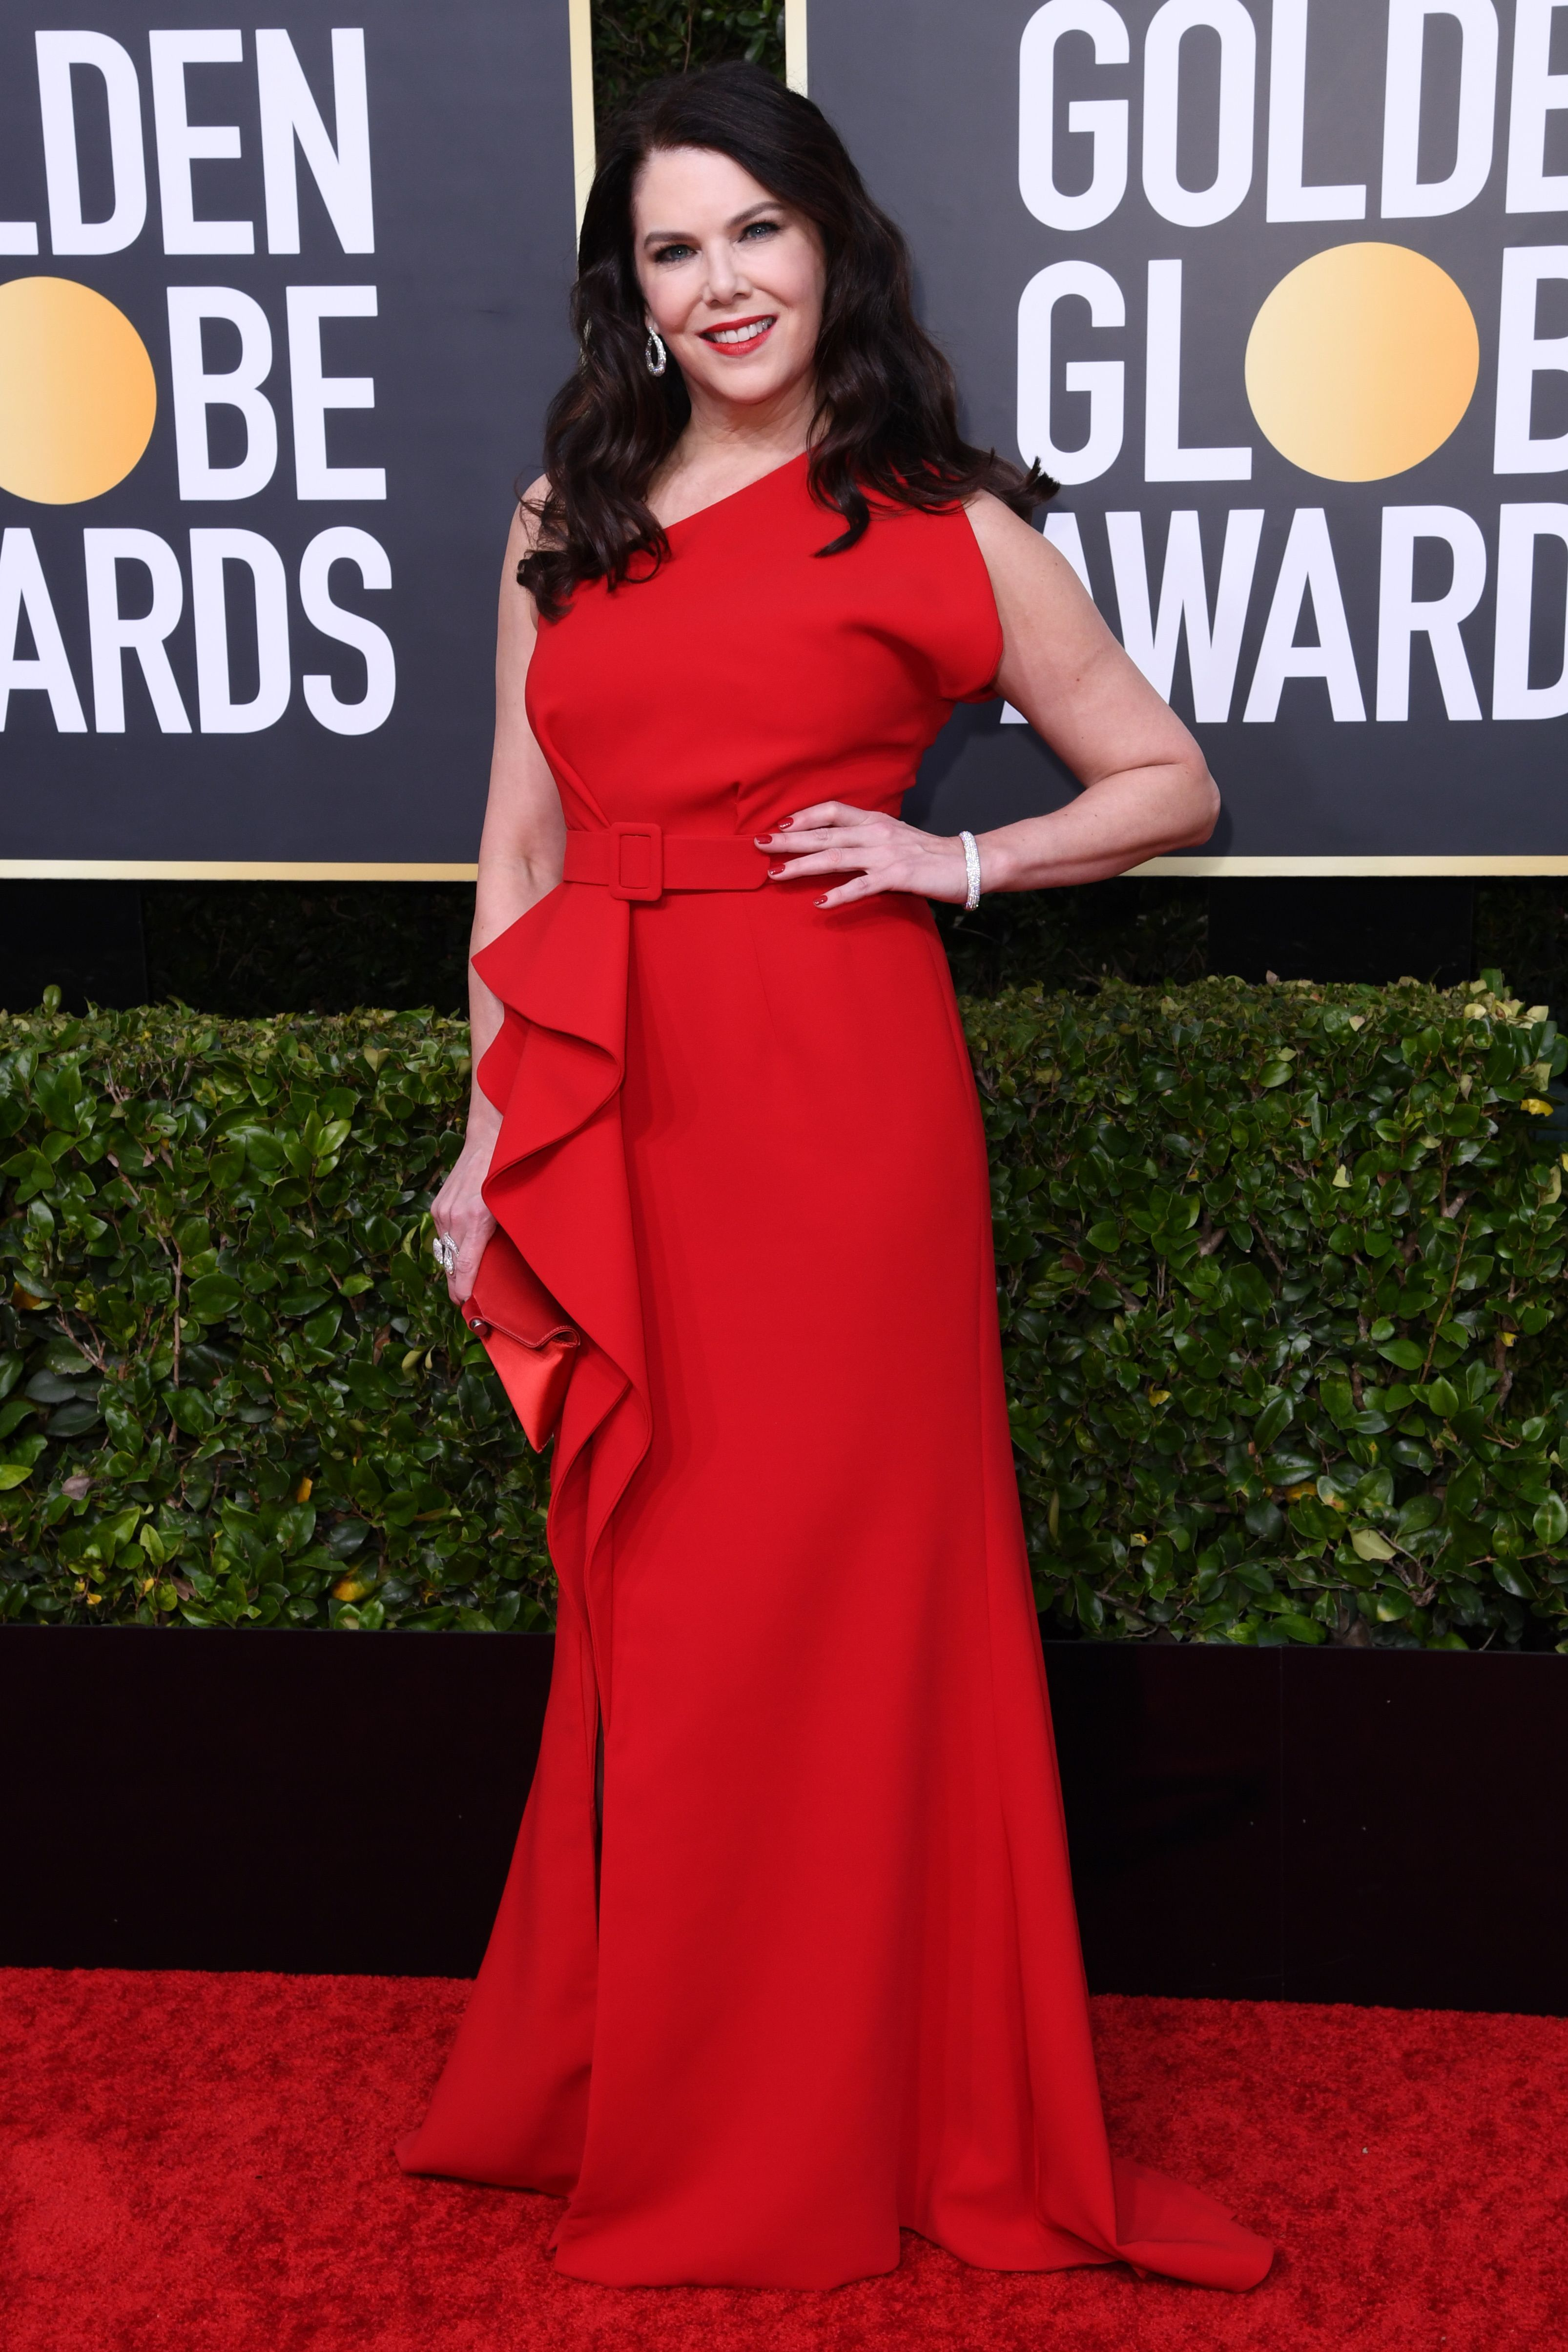 Lauren Graham's Golden Globes 2020 Look Gave Serious Lady in Red Vibes